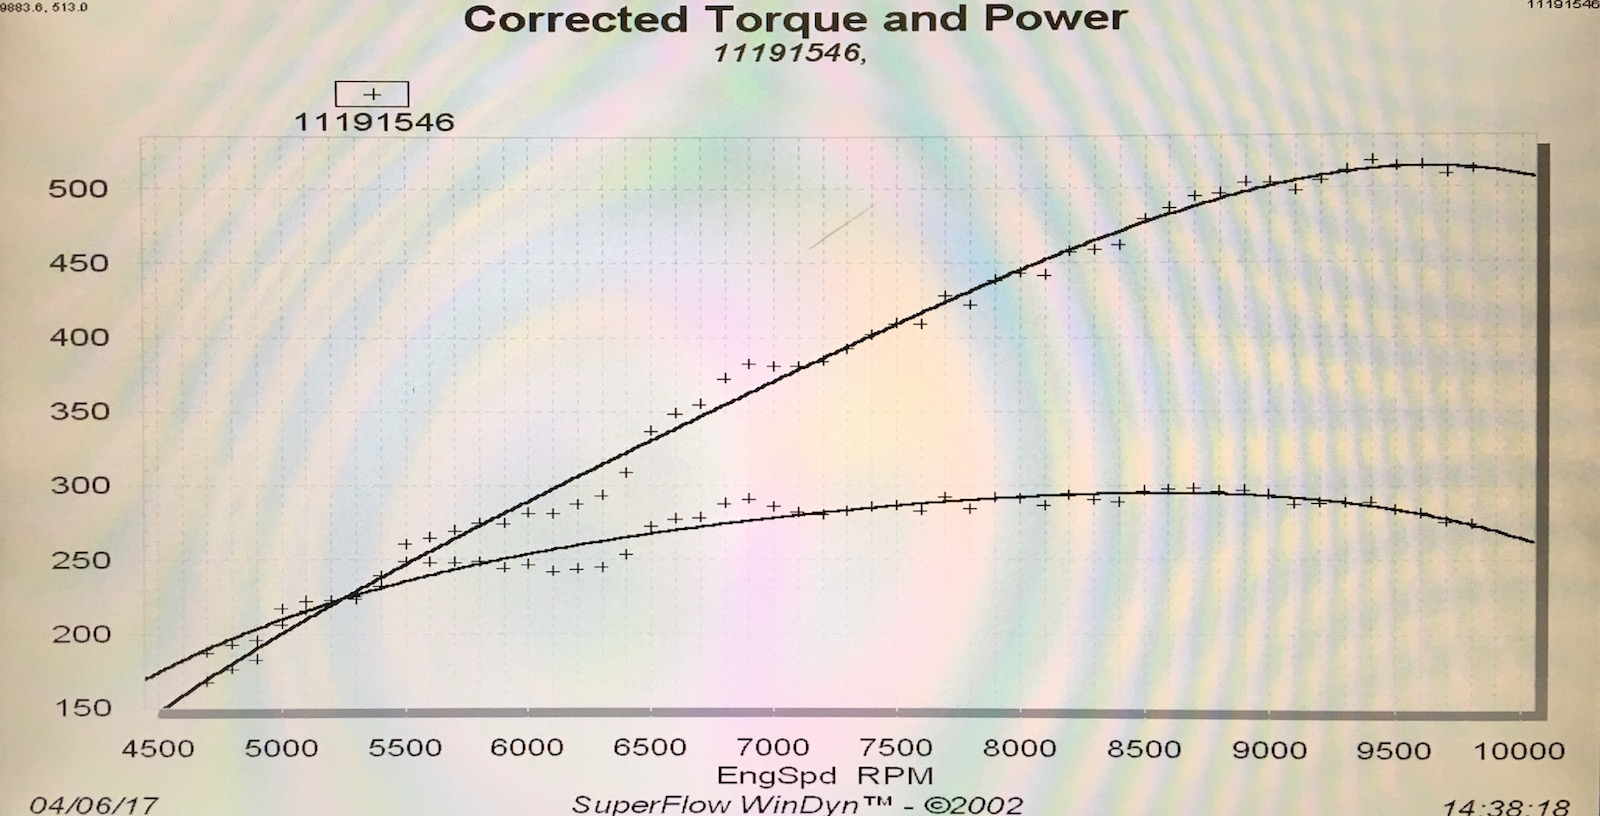 The 500 horsepower naturally aspirated k24 engine by 4piston to truly appreciate this power curve take a look at that nice flat torque curve where this motor delivers no less than 280 lb ft of torque from 6800 rpm malvernweather Choice Image